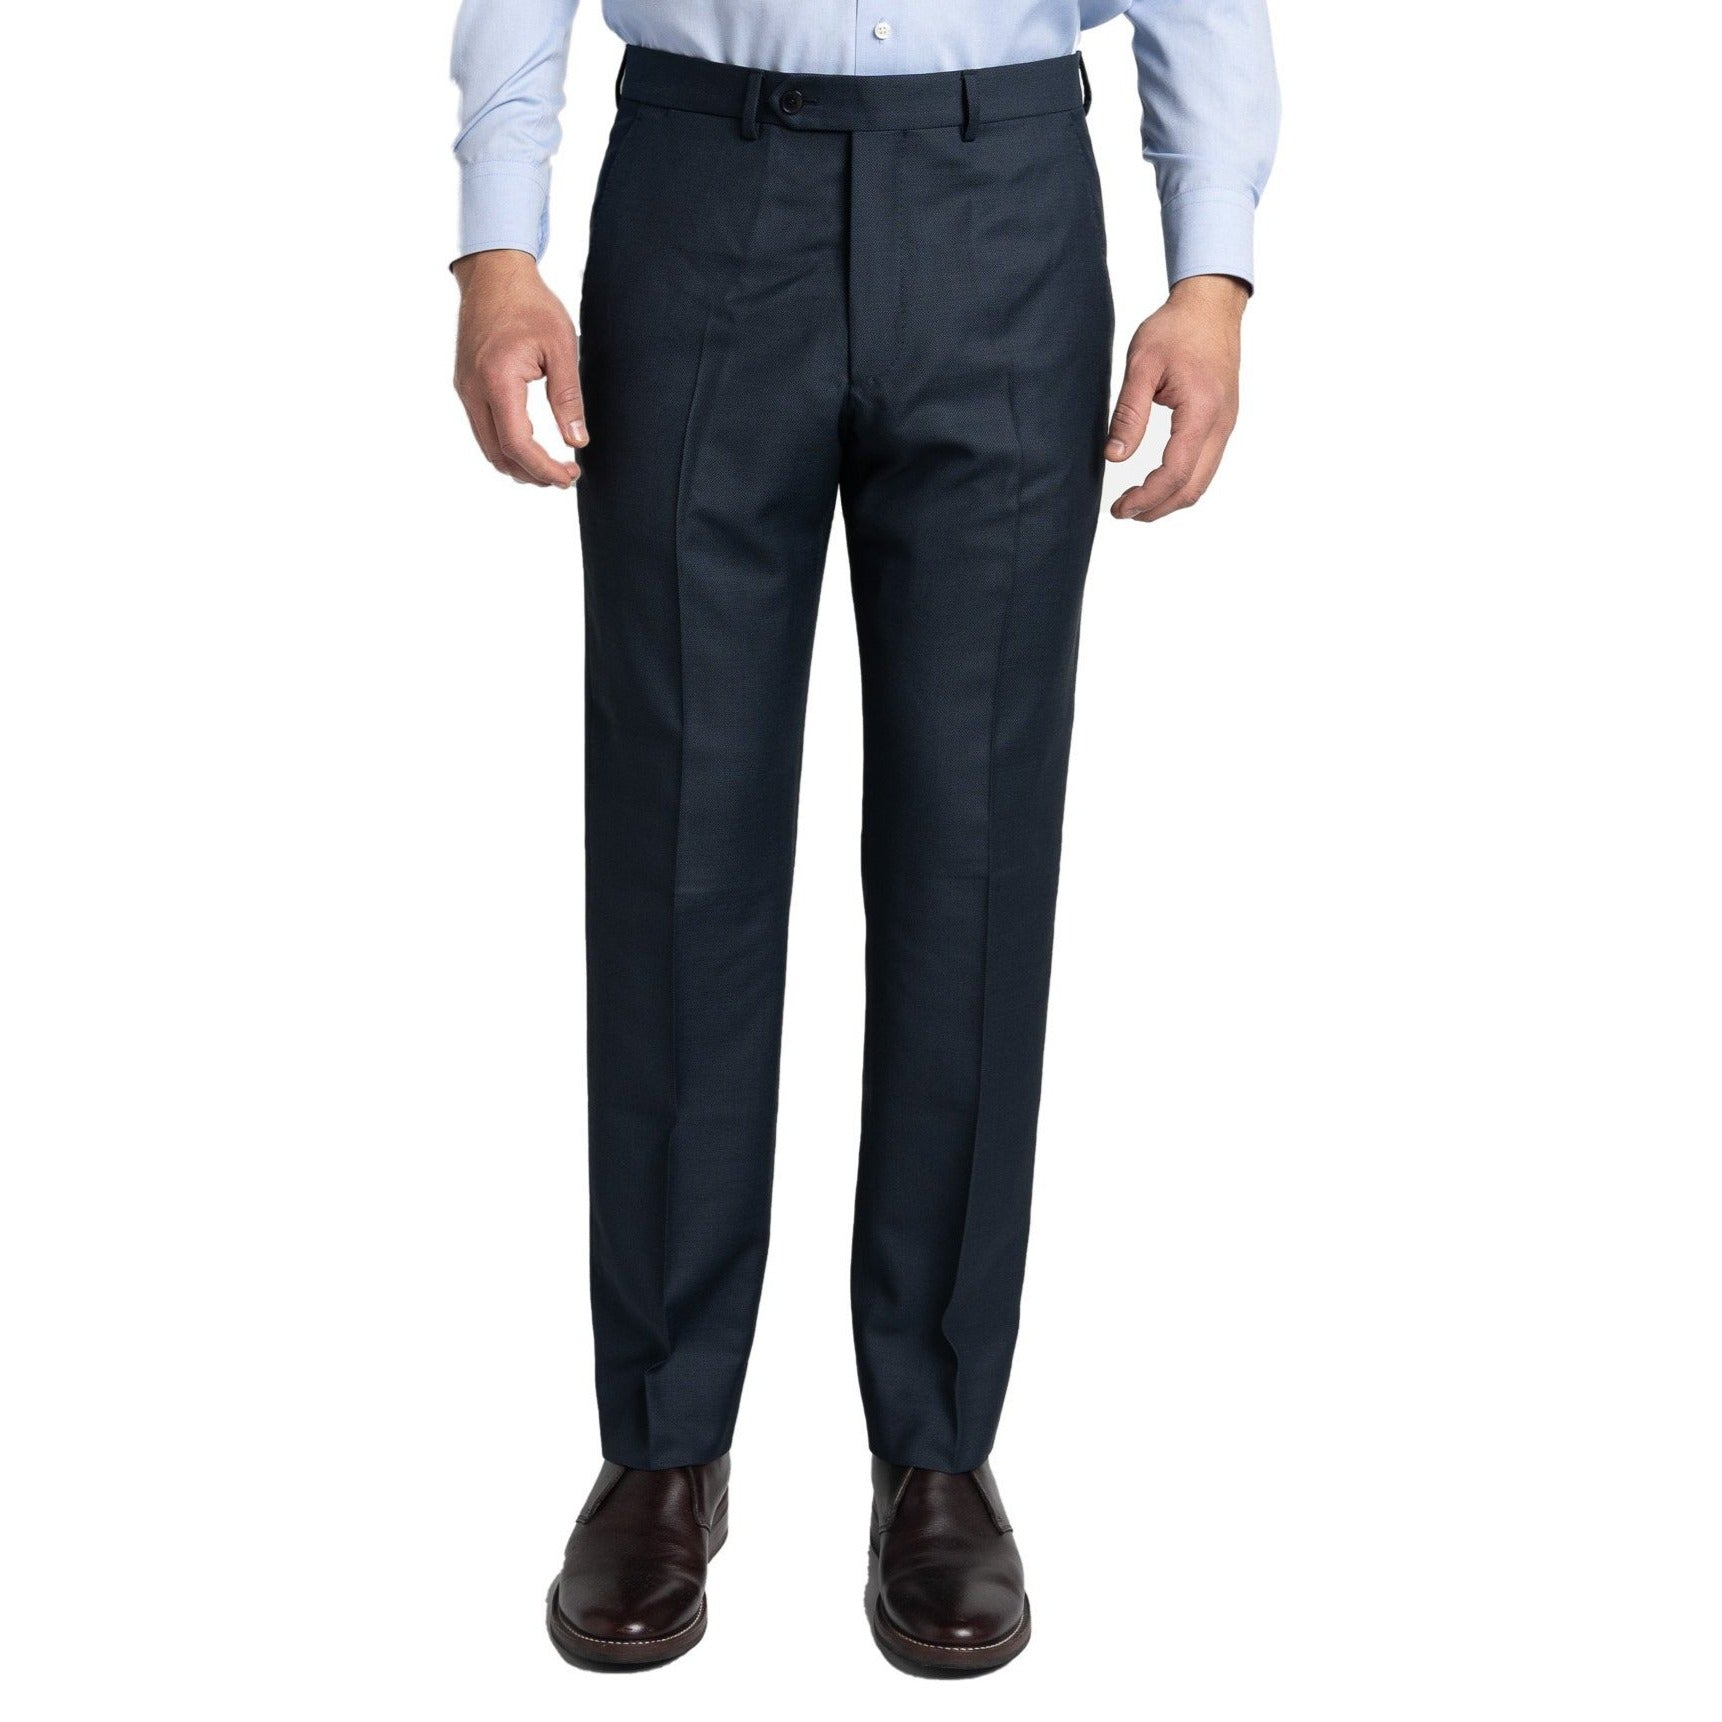 Essex Dress Pants - Navy Birdseye